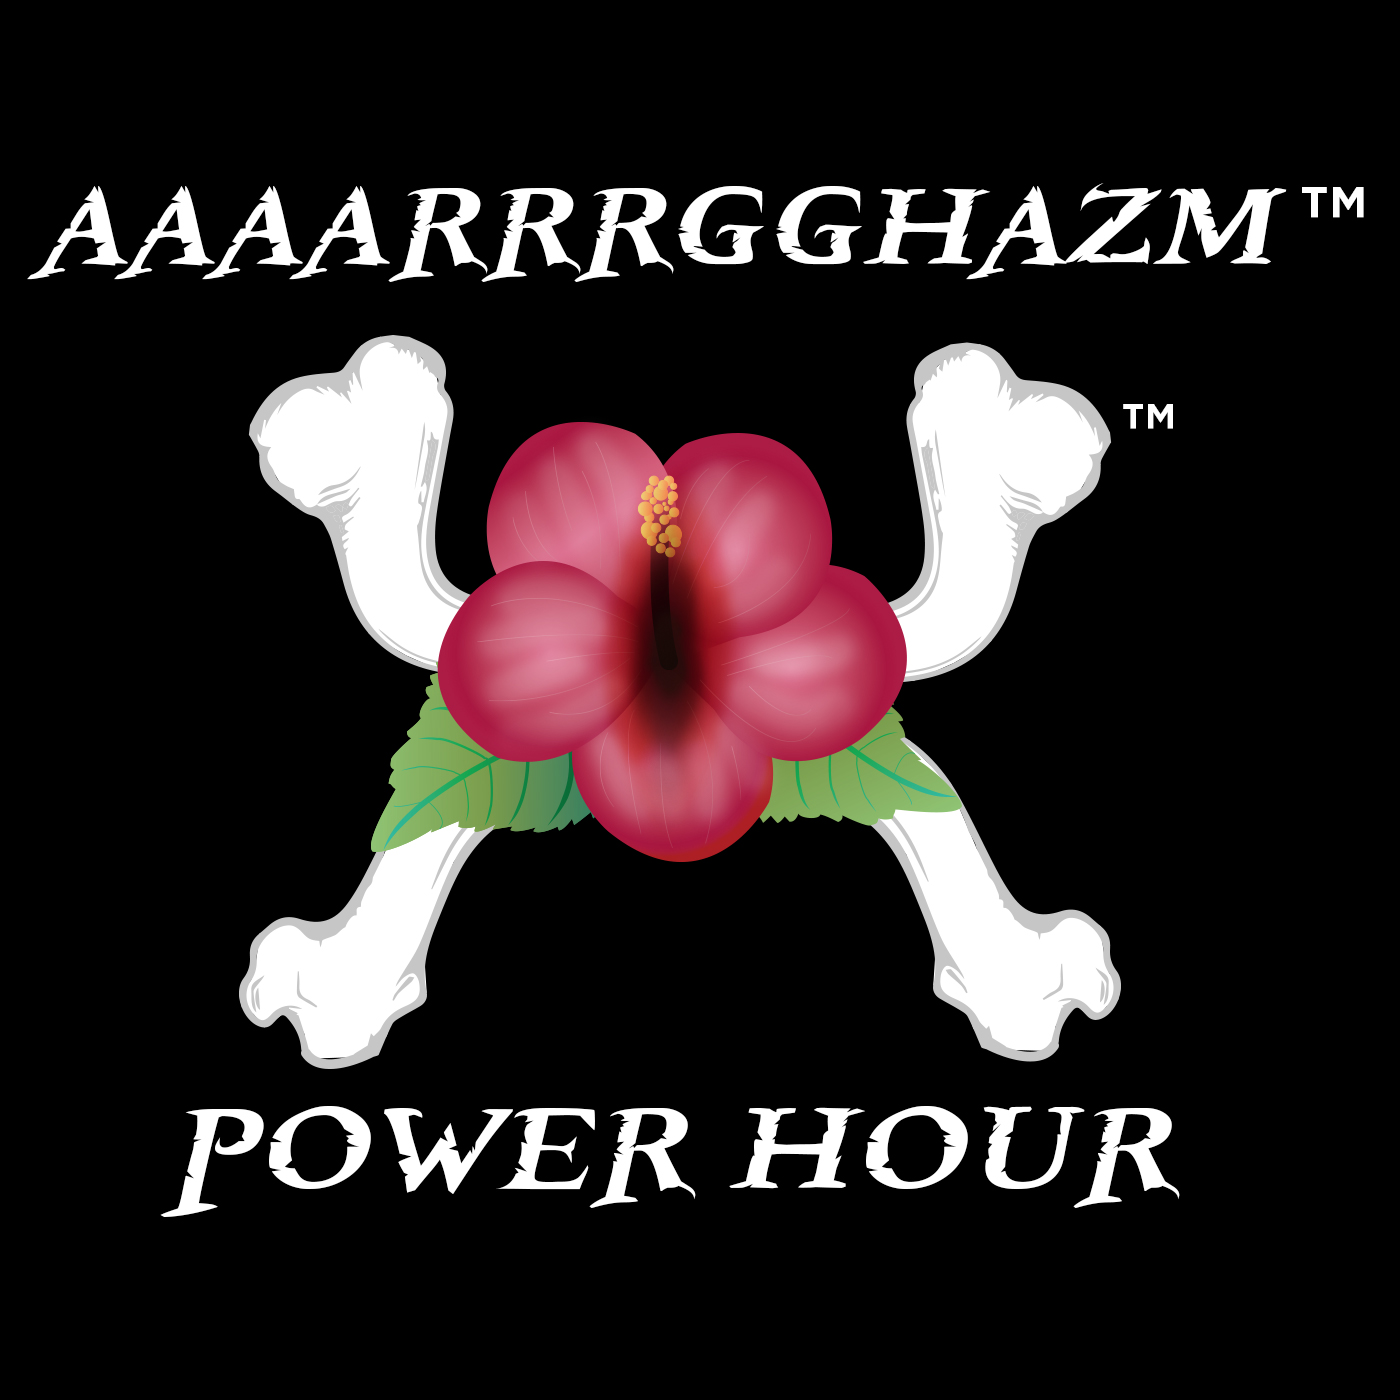 AAAARRRGGHAZM Power Hour